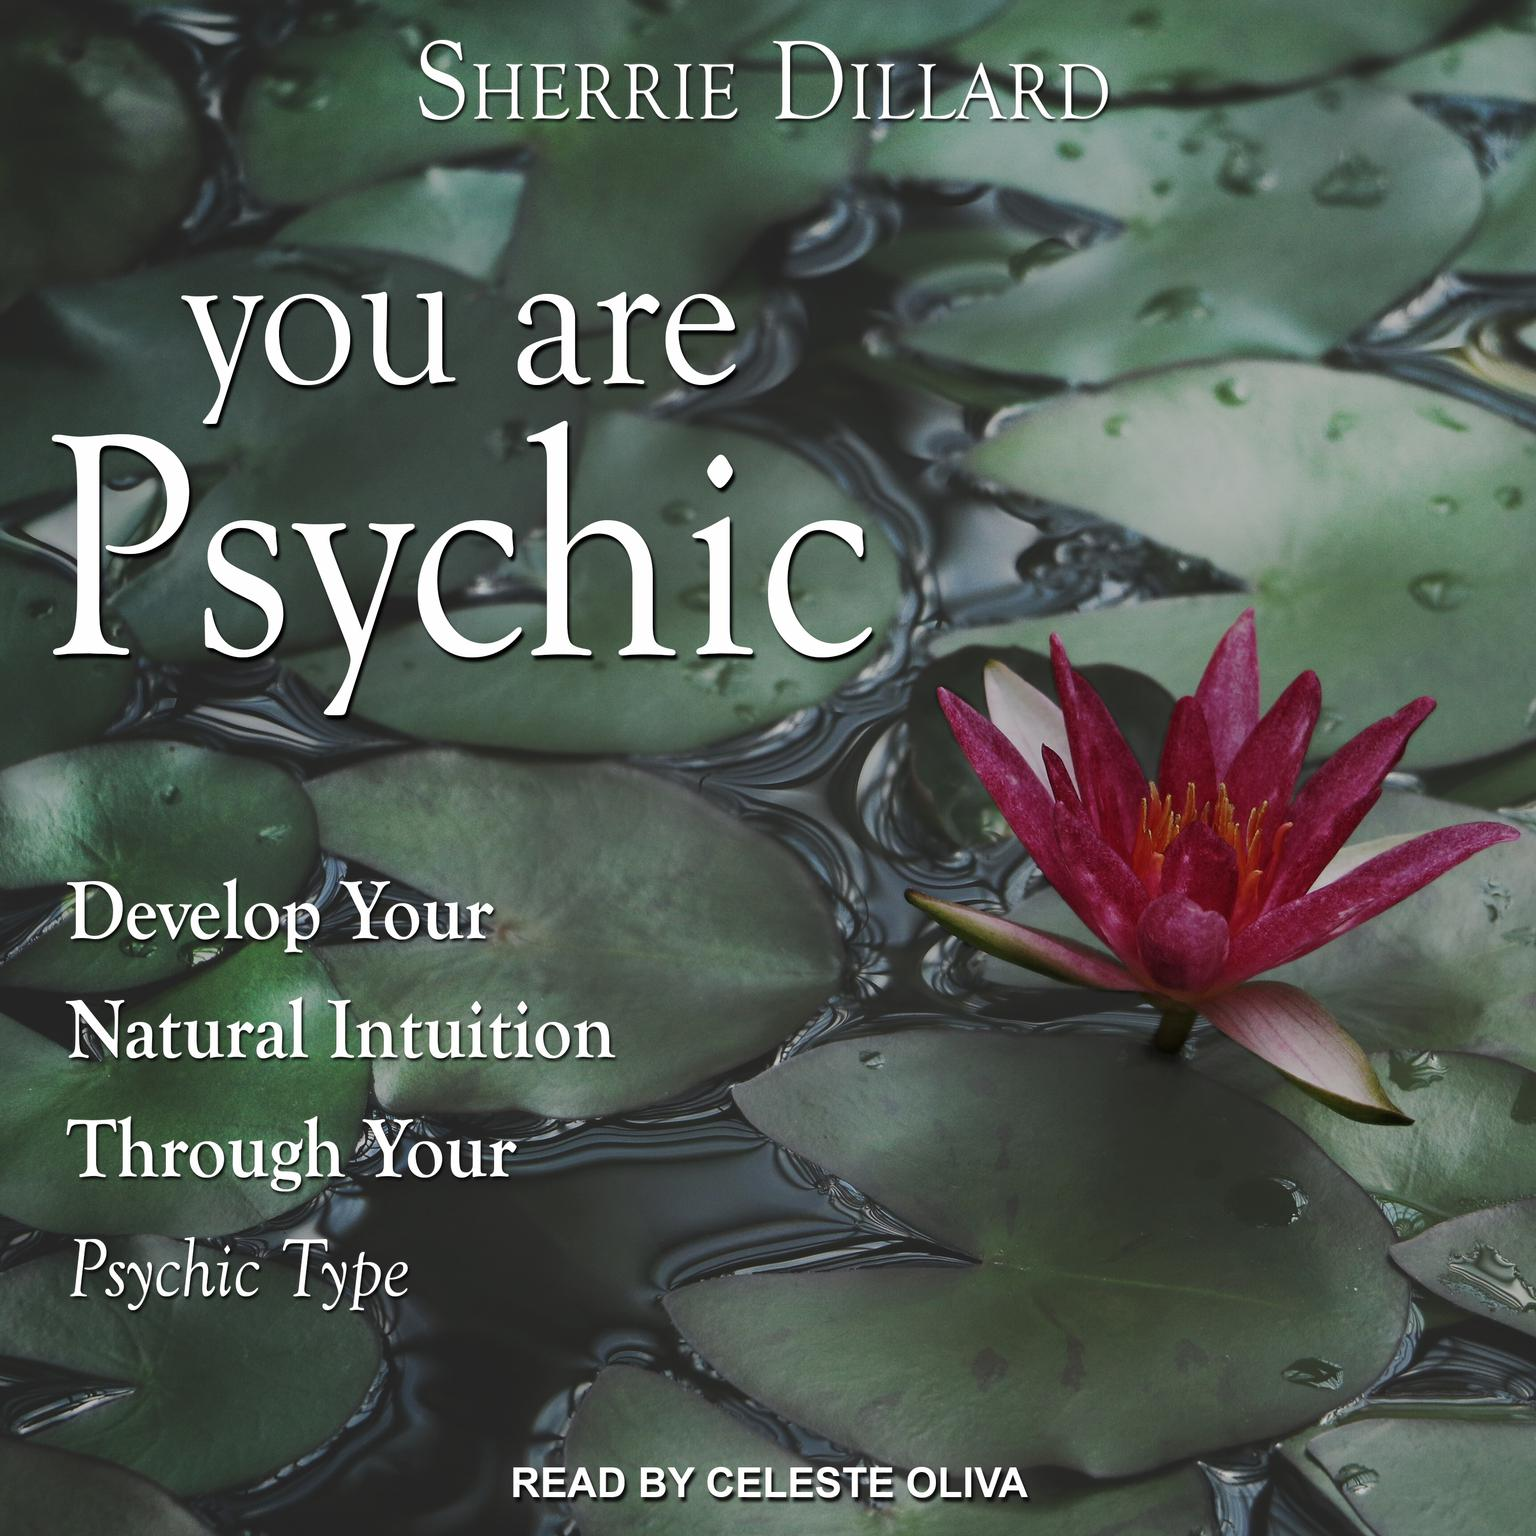 You Are Psychic: Develop Your Natural Intuition Through Your Psychic Type Audiobook, by Sherrie Dillard